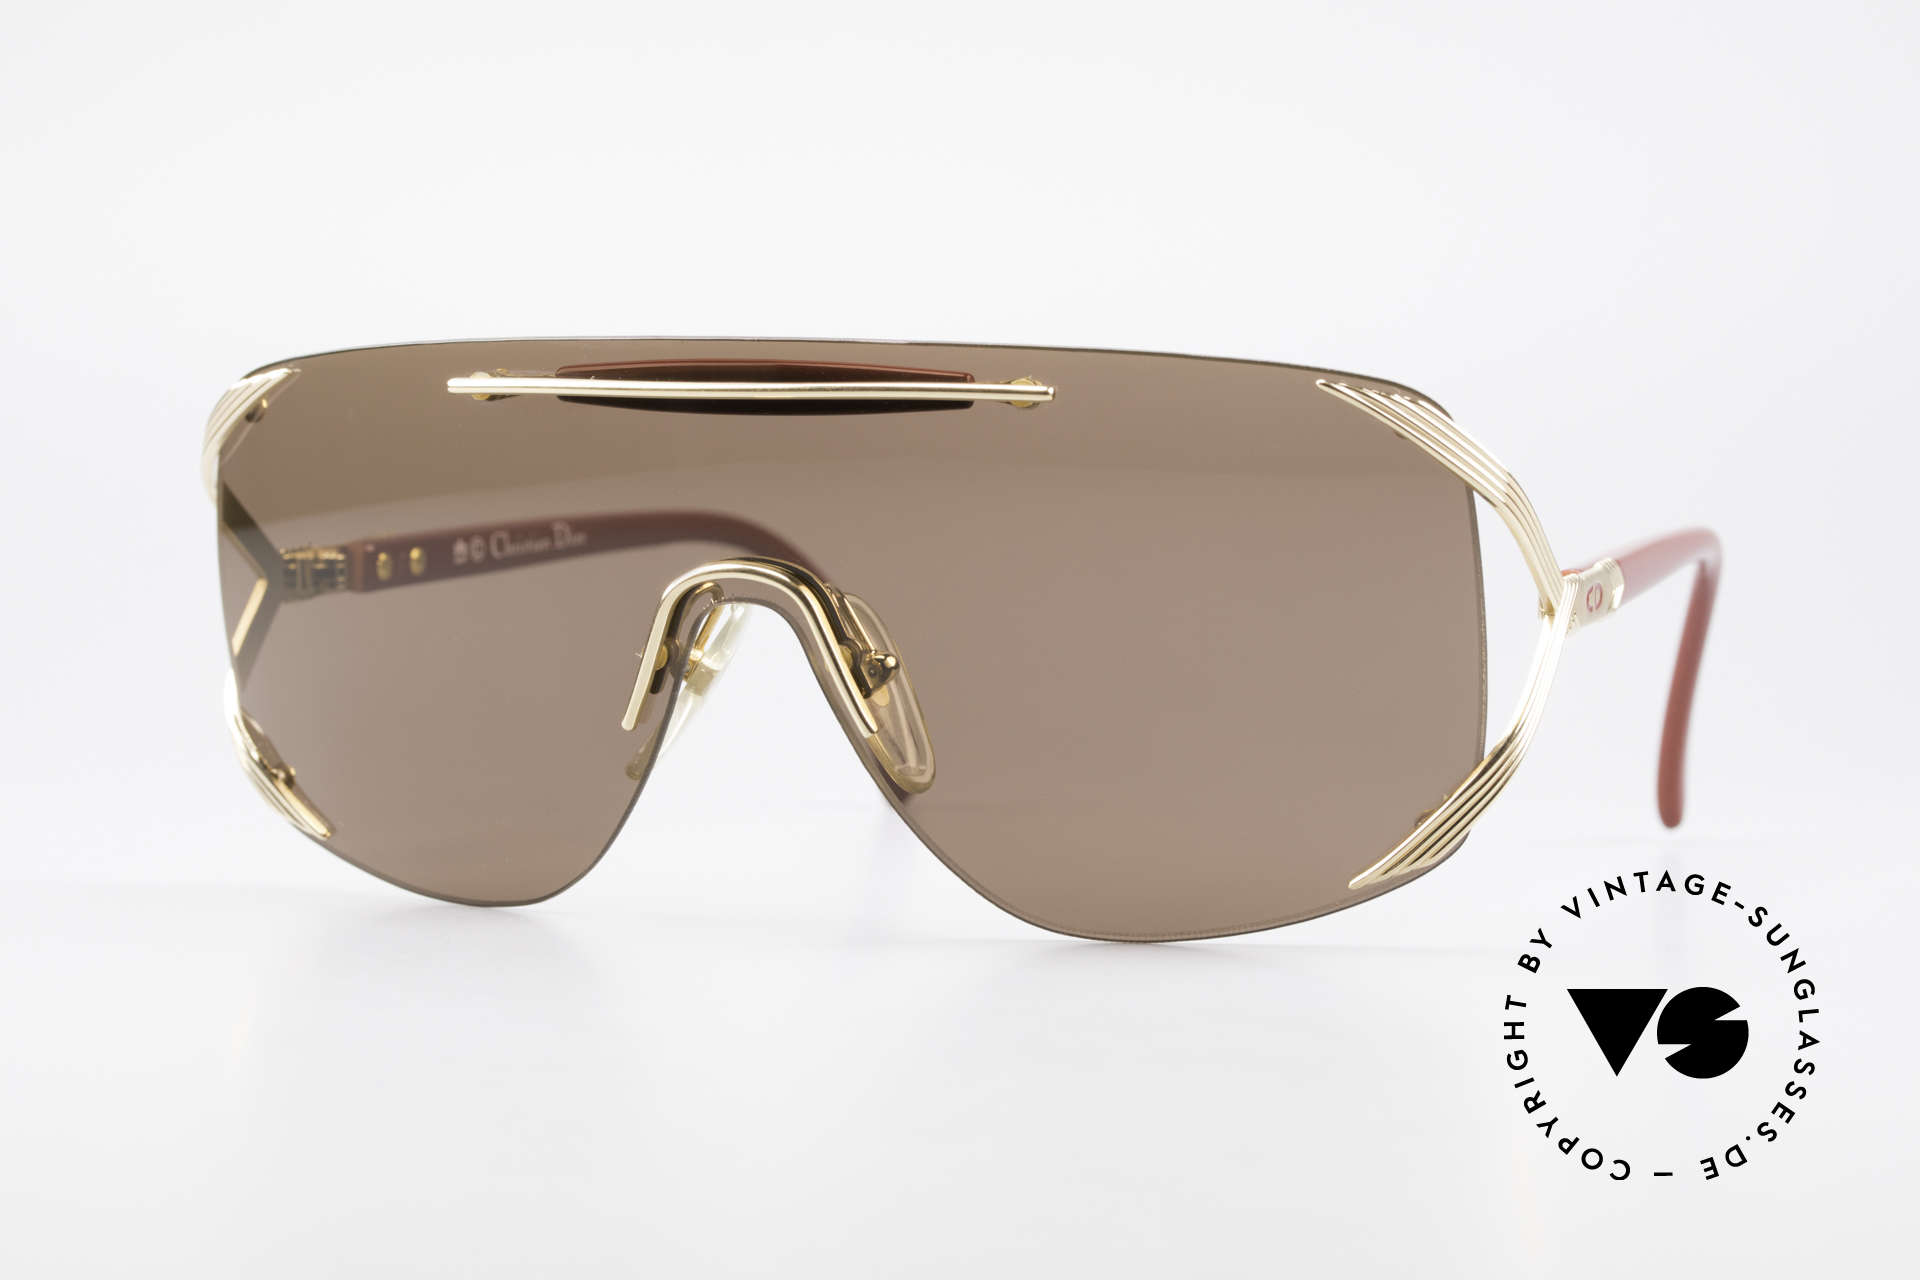 Christian Dior 2434 Rihanna Vintage Sunglasses, awesome Dior designer sunglasses from the 80's/90's, Made for Women